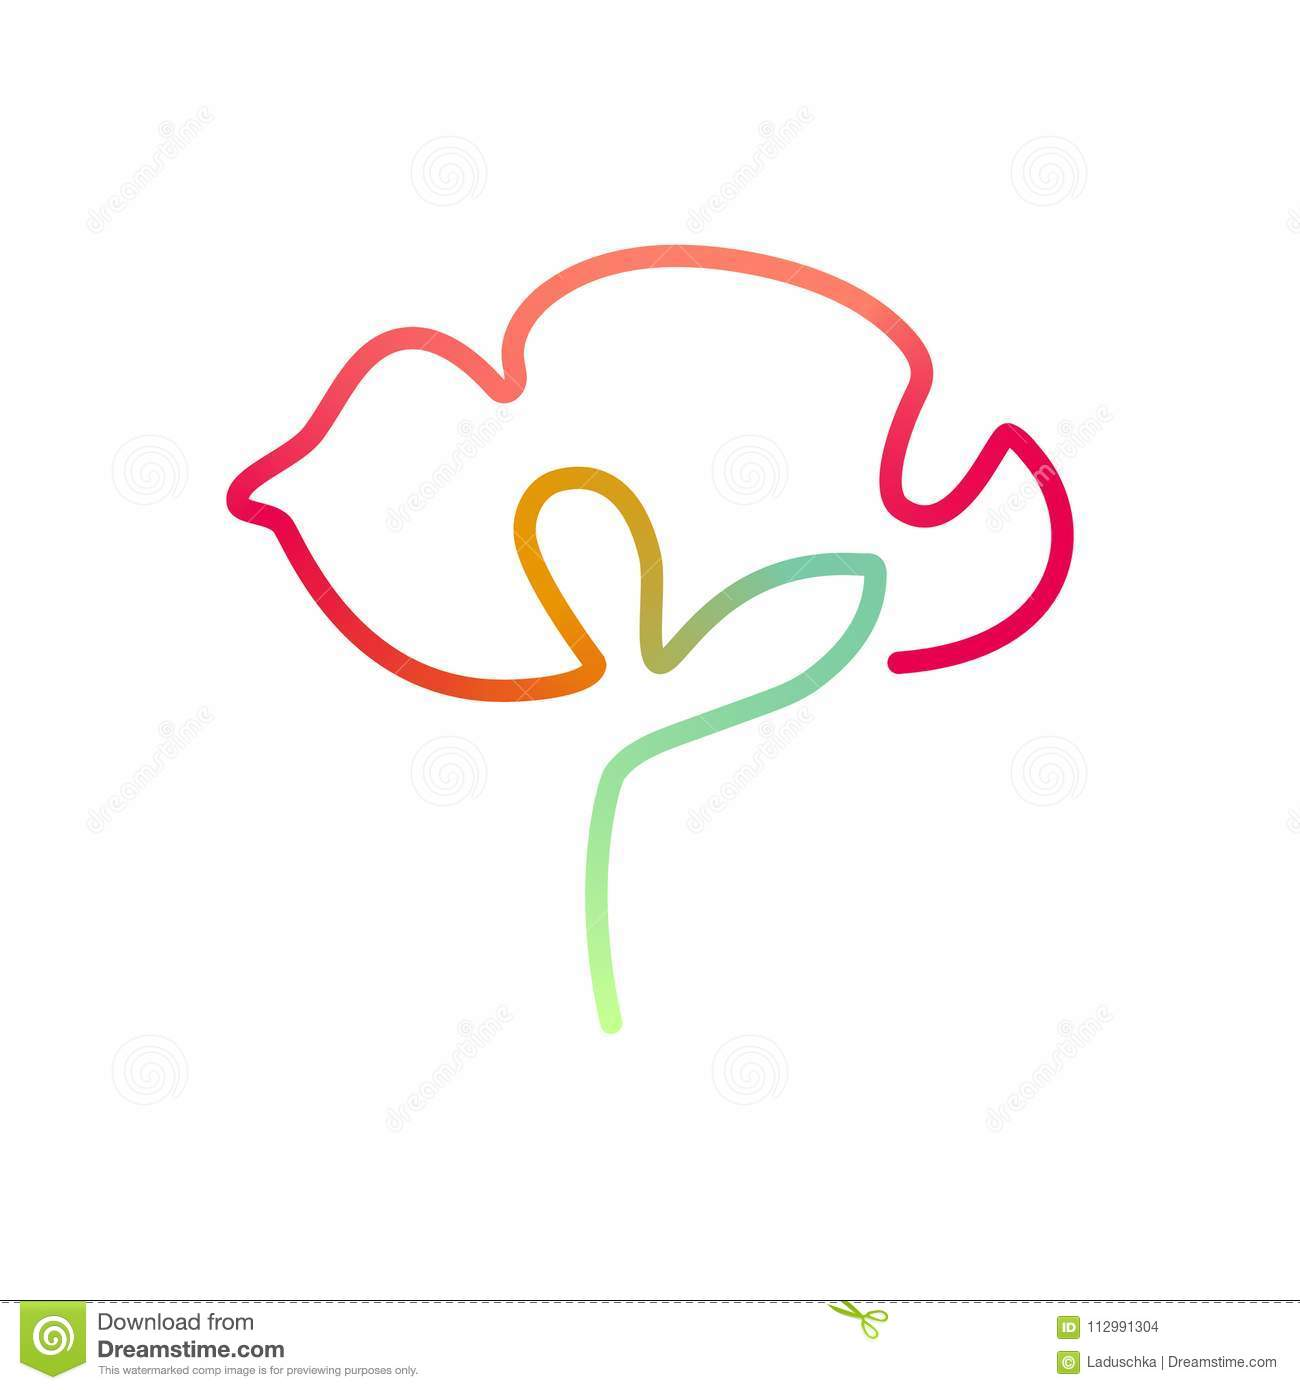 Continuous bright line art of poppy flower